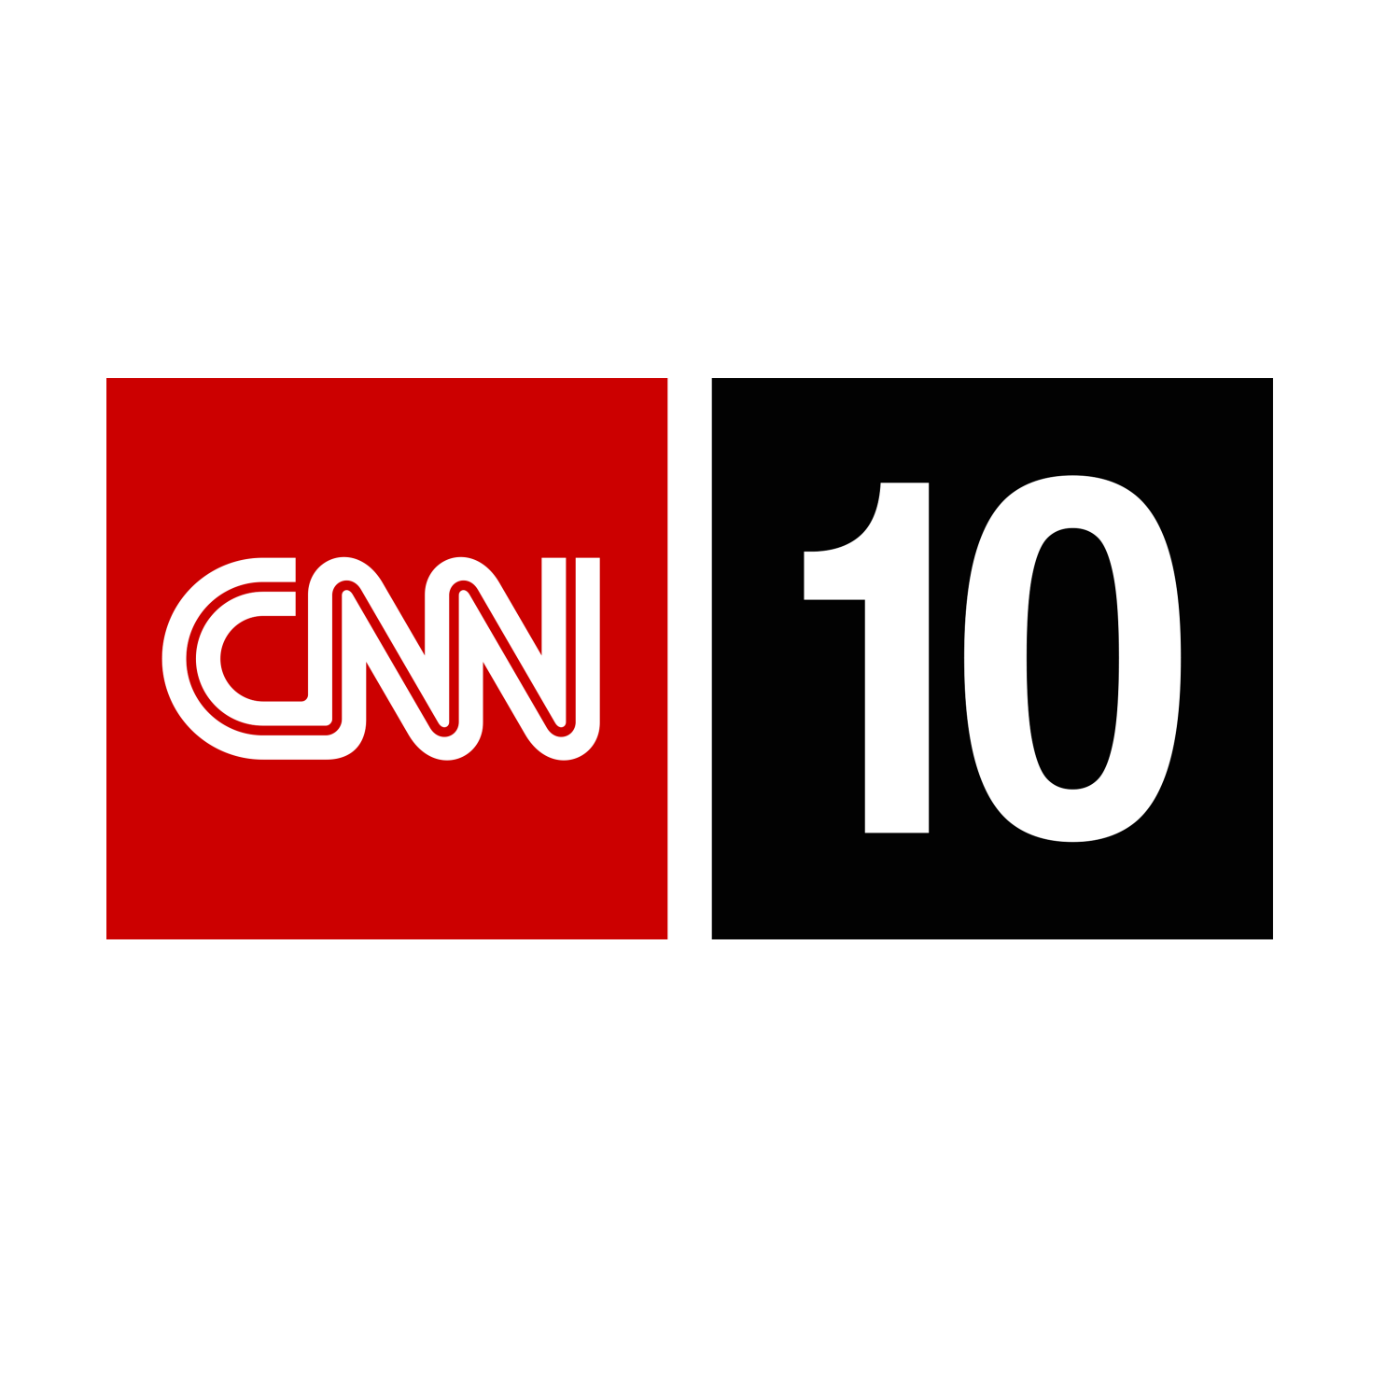 CNN Student News - May 10, 2013